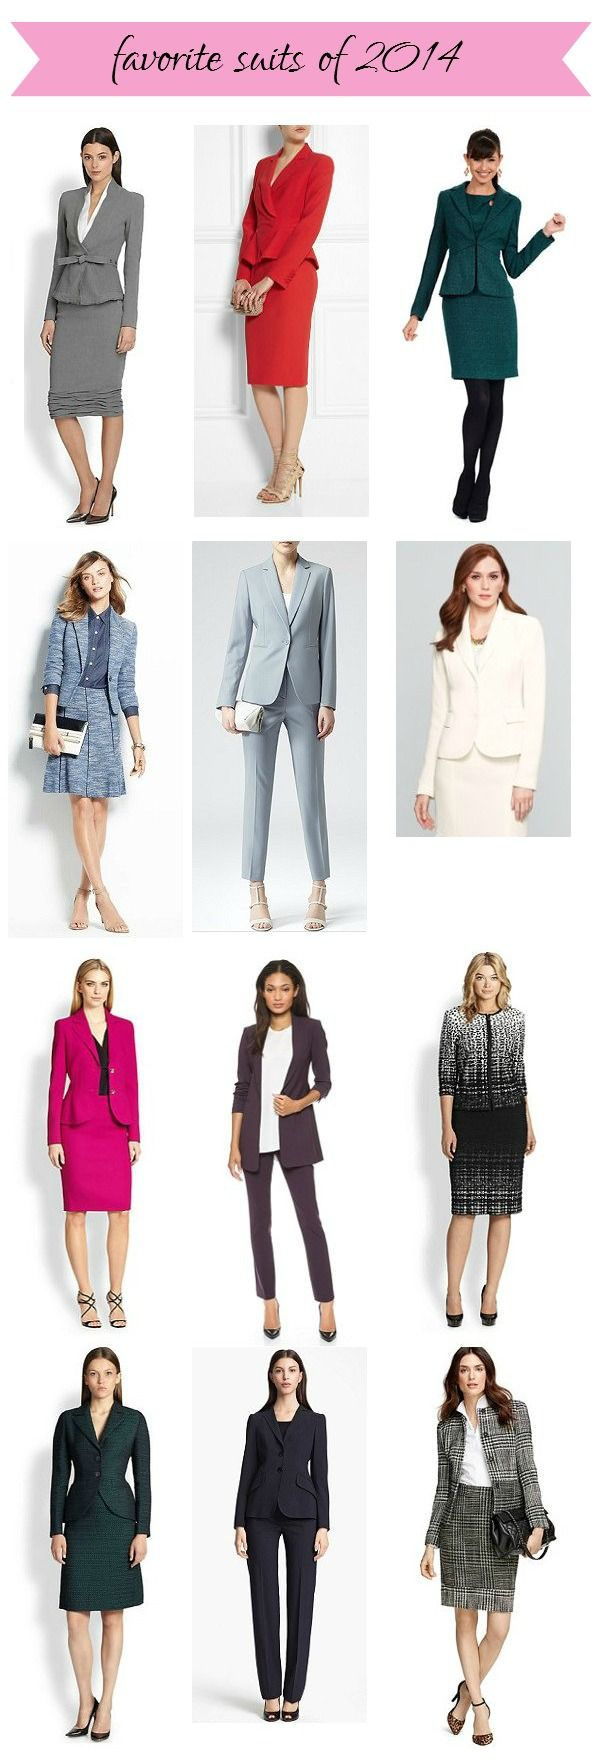 Realized I forgot to pin this -- my favorite women's suits of 2014!  Lots of skirts suits in here, as well as colorful suits -- but a few pants suits as well.  Which do you prefer for a fun but professional suit look?